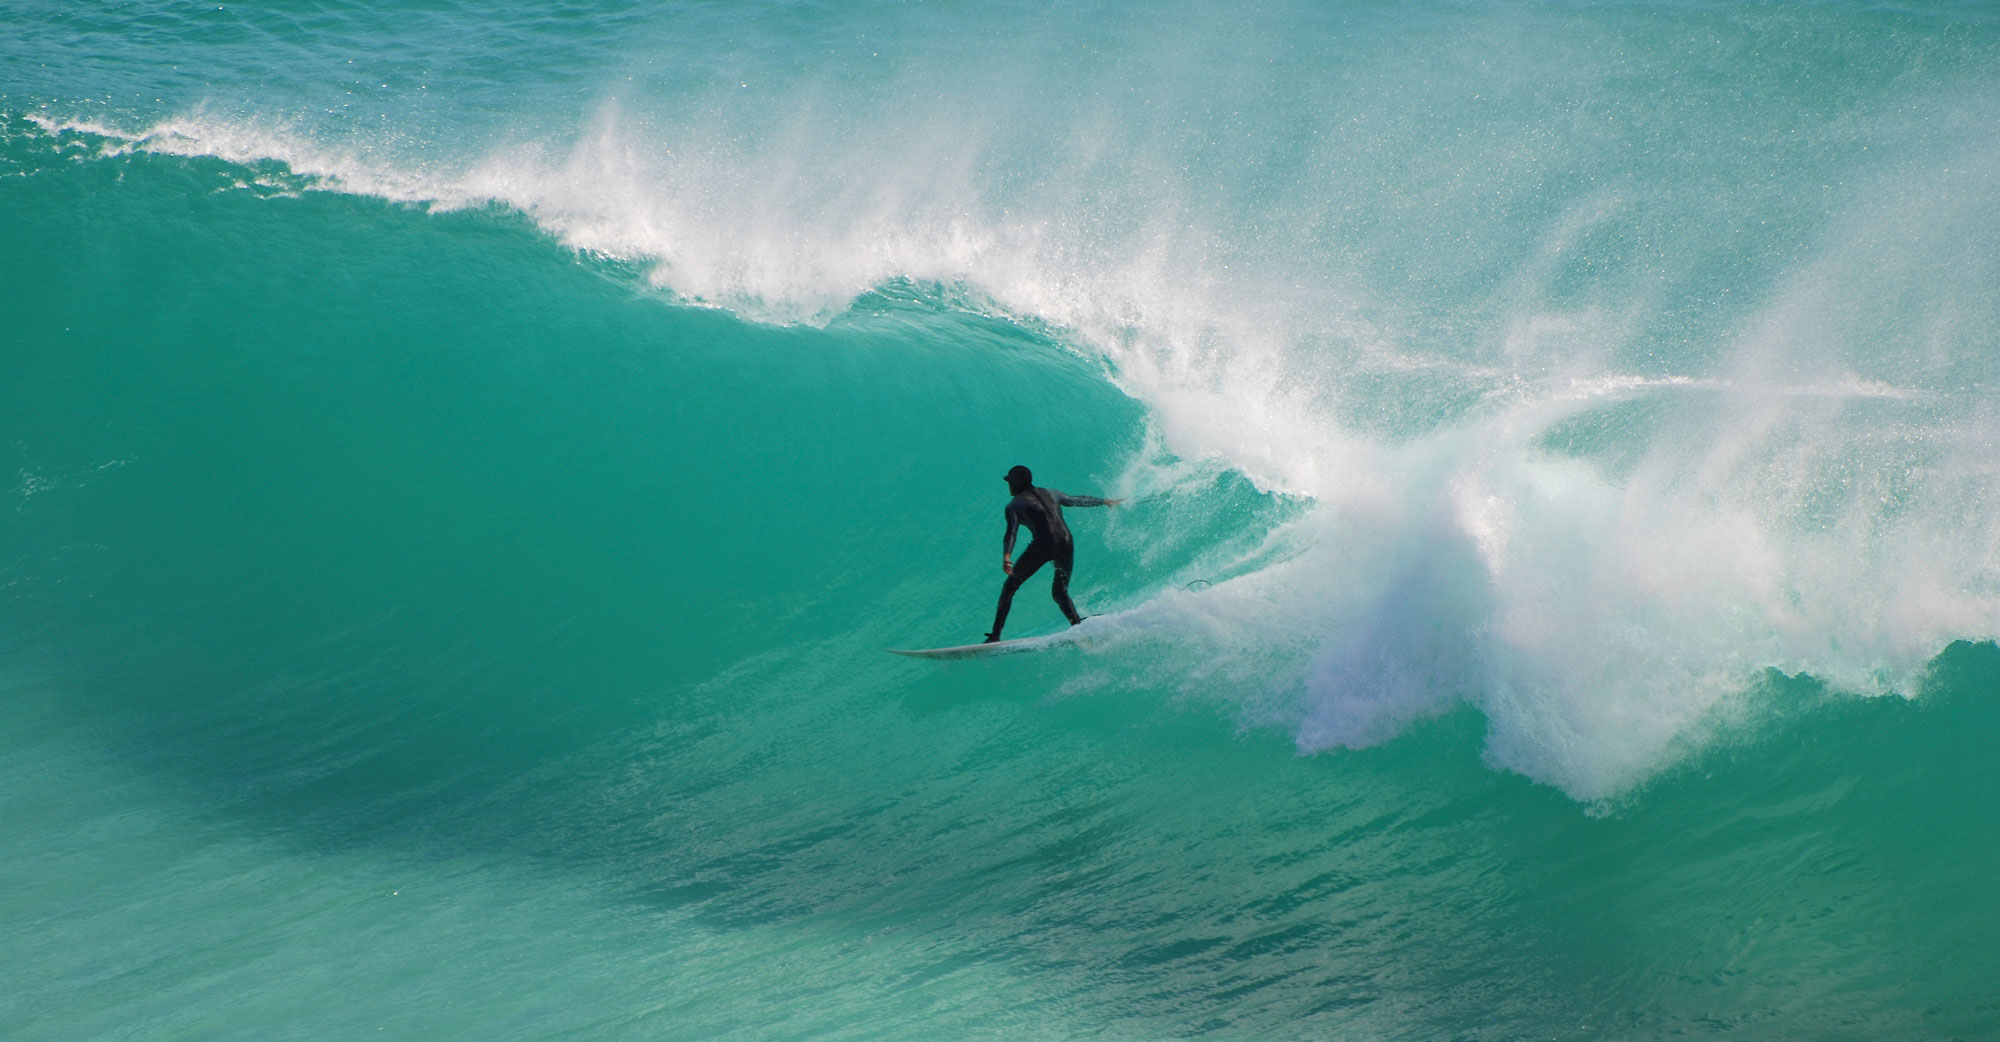 Epic surf spots near epic study abroad locations